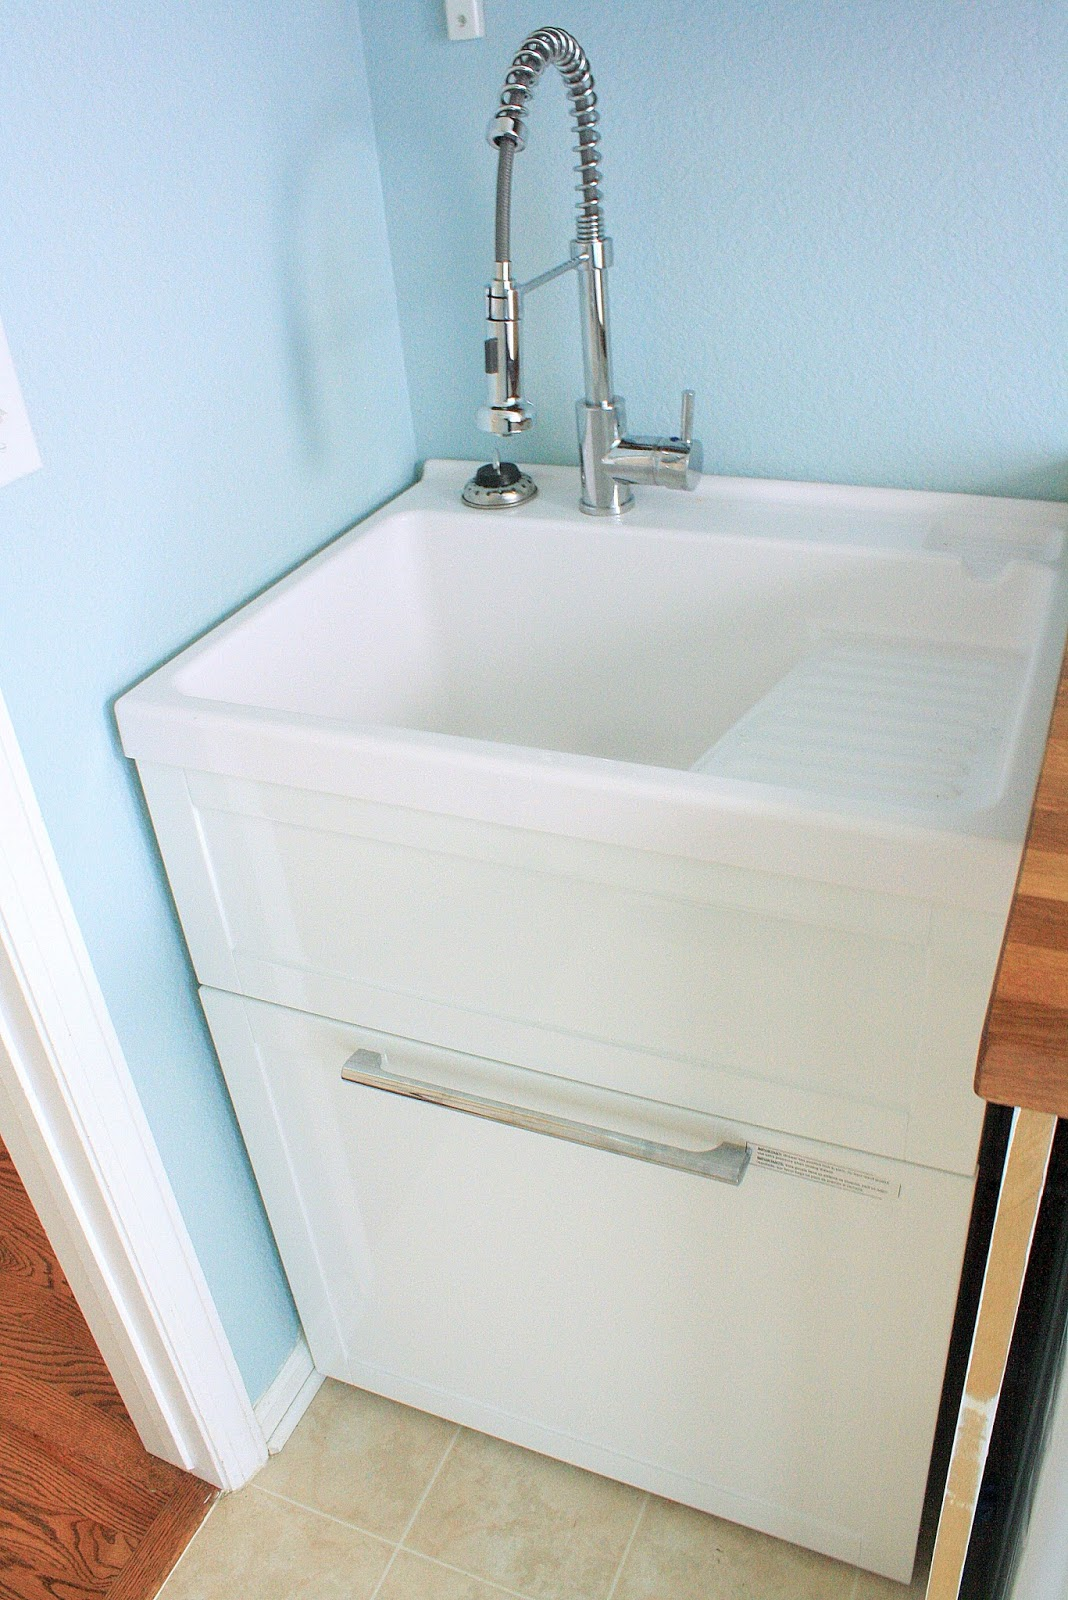 Utility Room Sink : Laundry Room Utility Sinks Interior Design Ideas